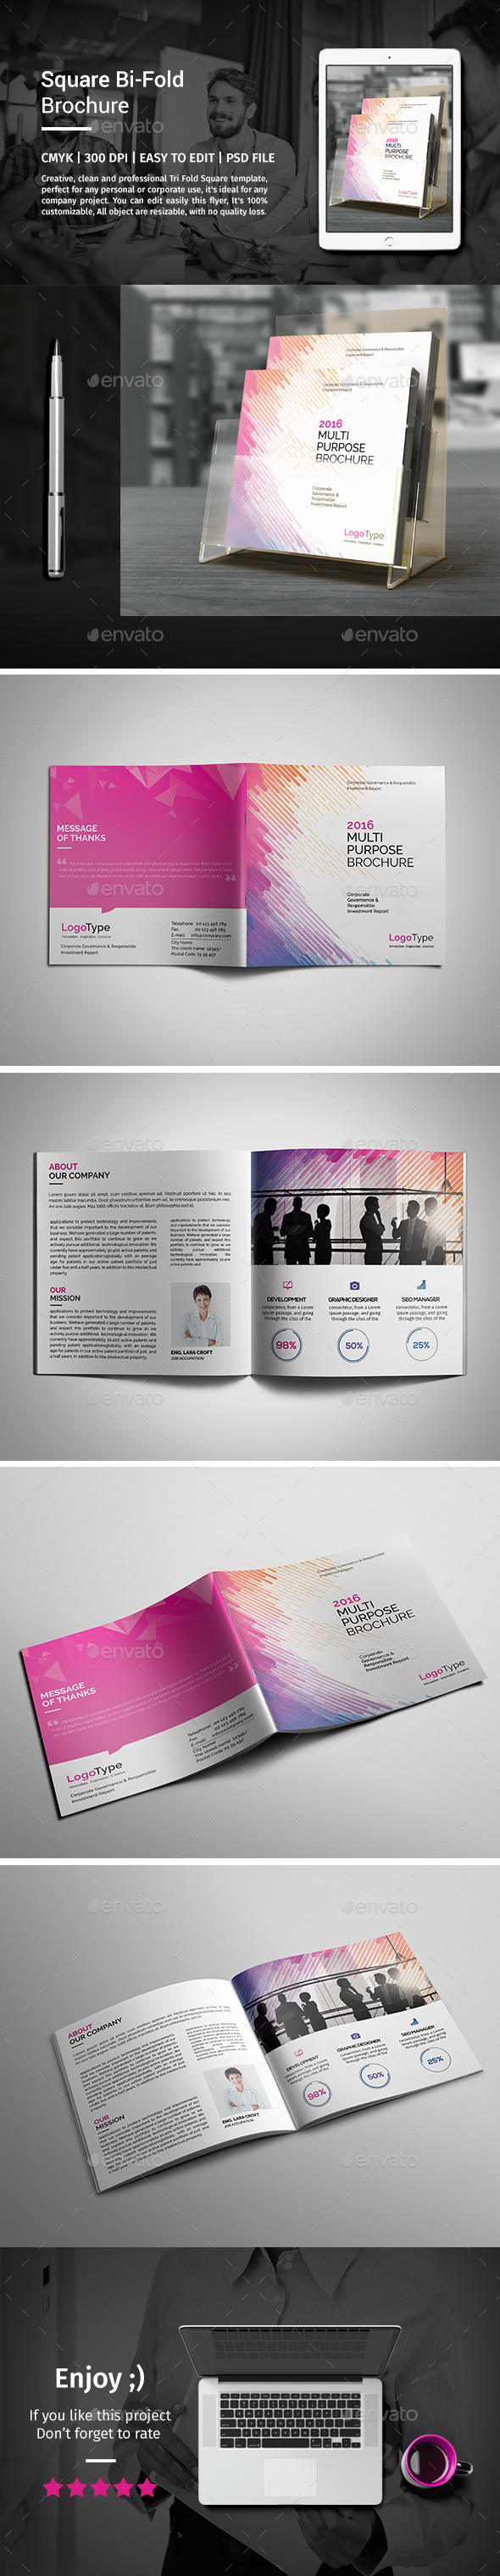 Corporate Bi-fold Square Brochure 04 - Catalogs Brochures